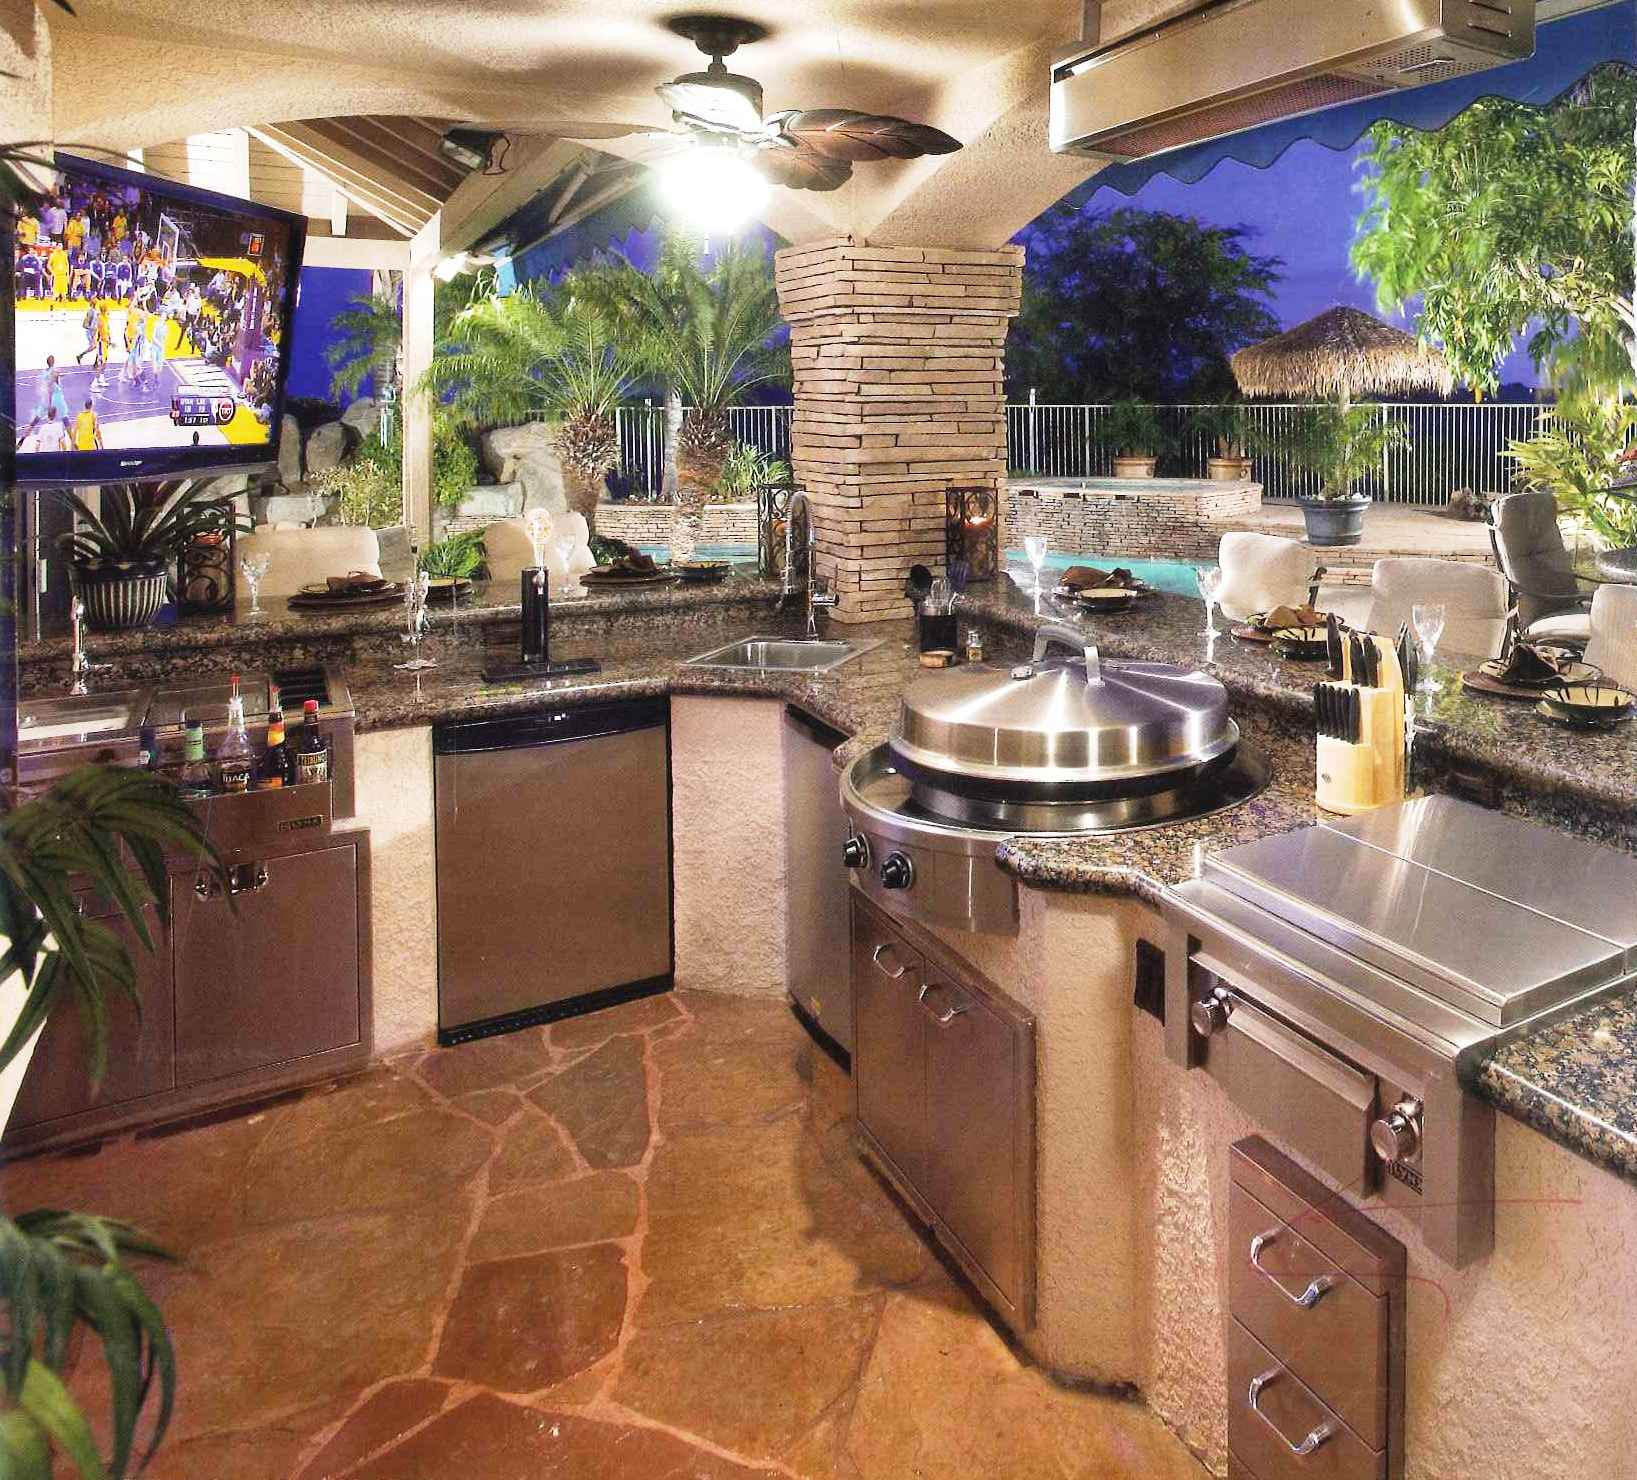 Beau Wall Mount TV Added In Outdoor Kitchen To Make Cozier Nuance While Waiting  For The Prepared